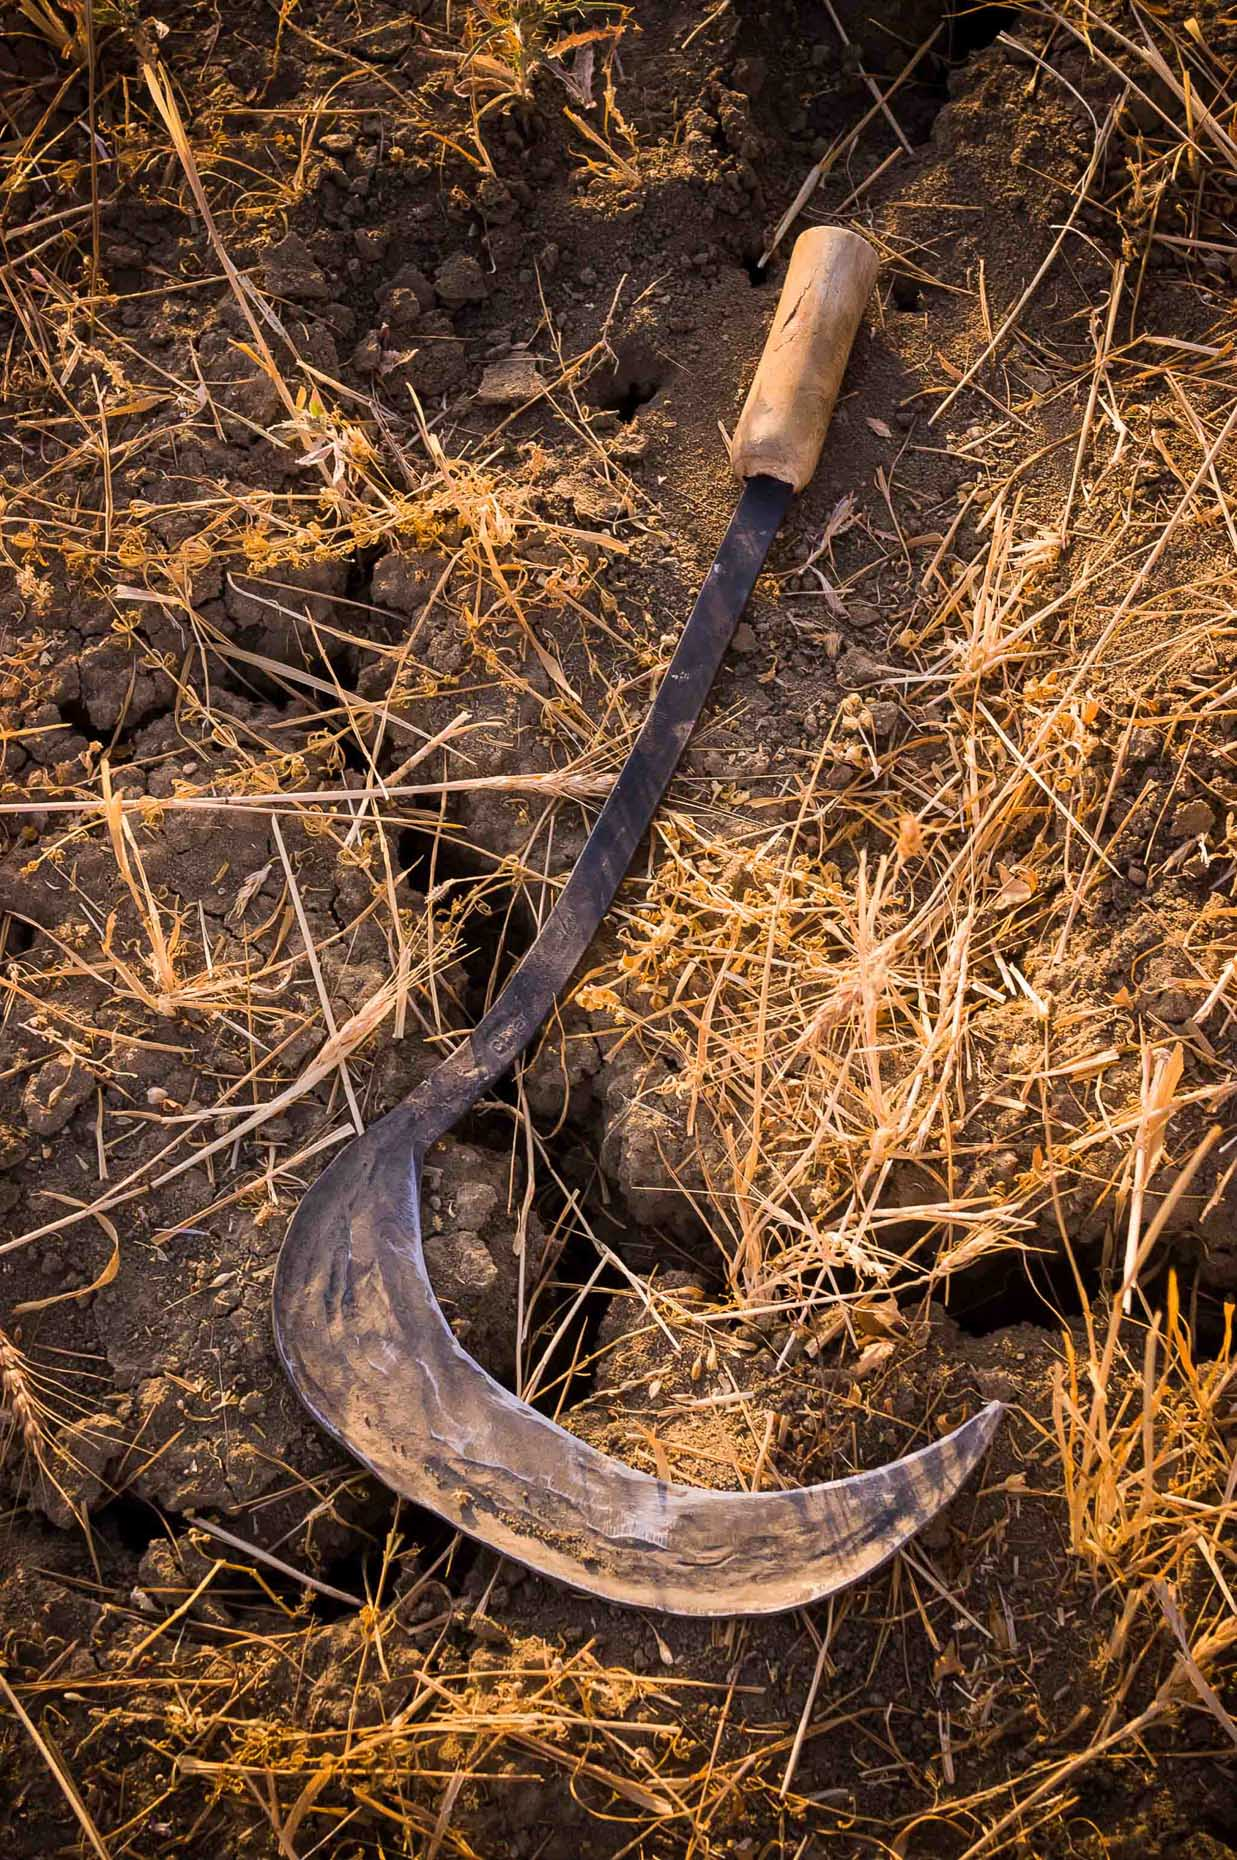 Photo of hand scythe  in warm natural light, Van Turkey.